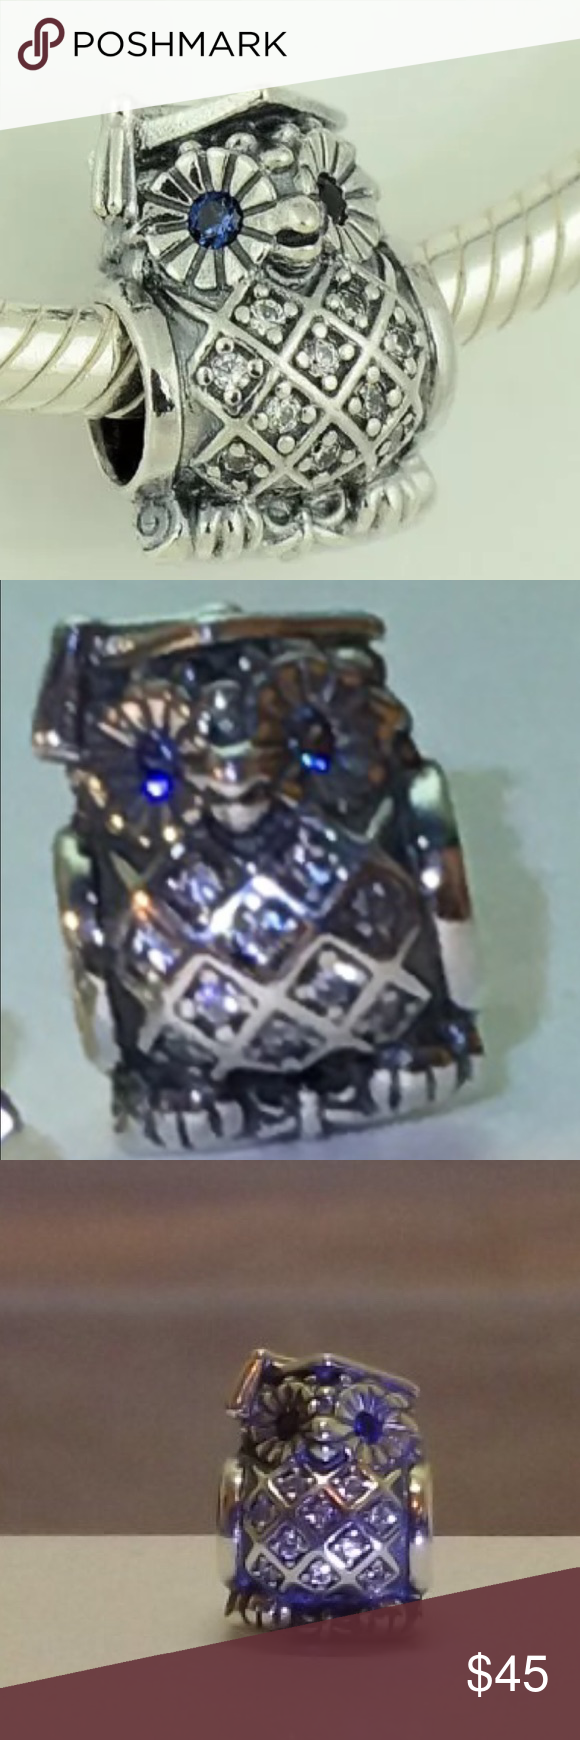 "PANDORA ""GRADUATE OWL"" GIFT CHARM AUTHENTIC PANDORA S925 ALE SOLID STERLING SILVER CLEAR CUBIC ZIRCONIA BRAND NEW IN ORIGINAL PANDORA BOX FOR GIFTING SHIPS IMMEDIATELY Pandora Jewelry Bracelets"